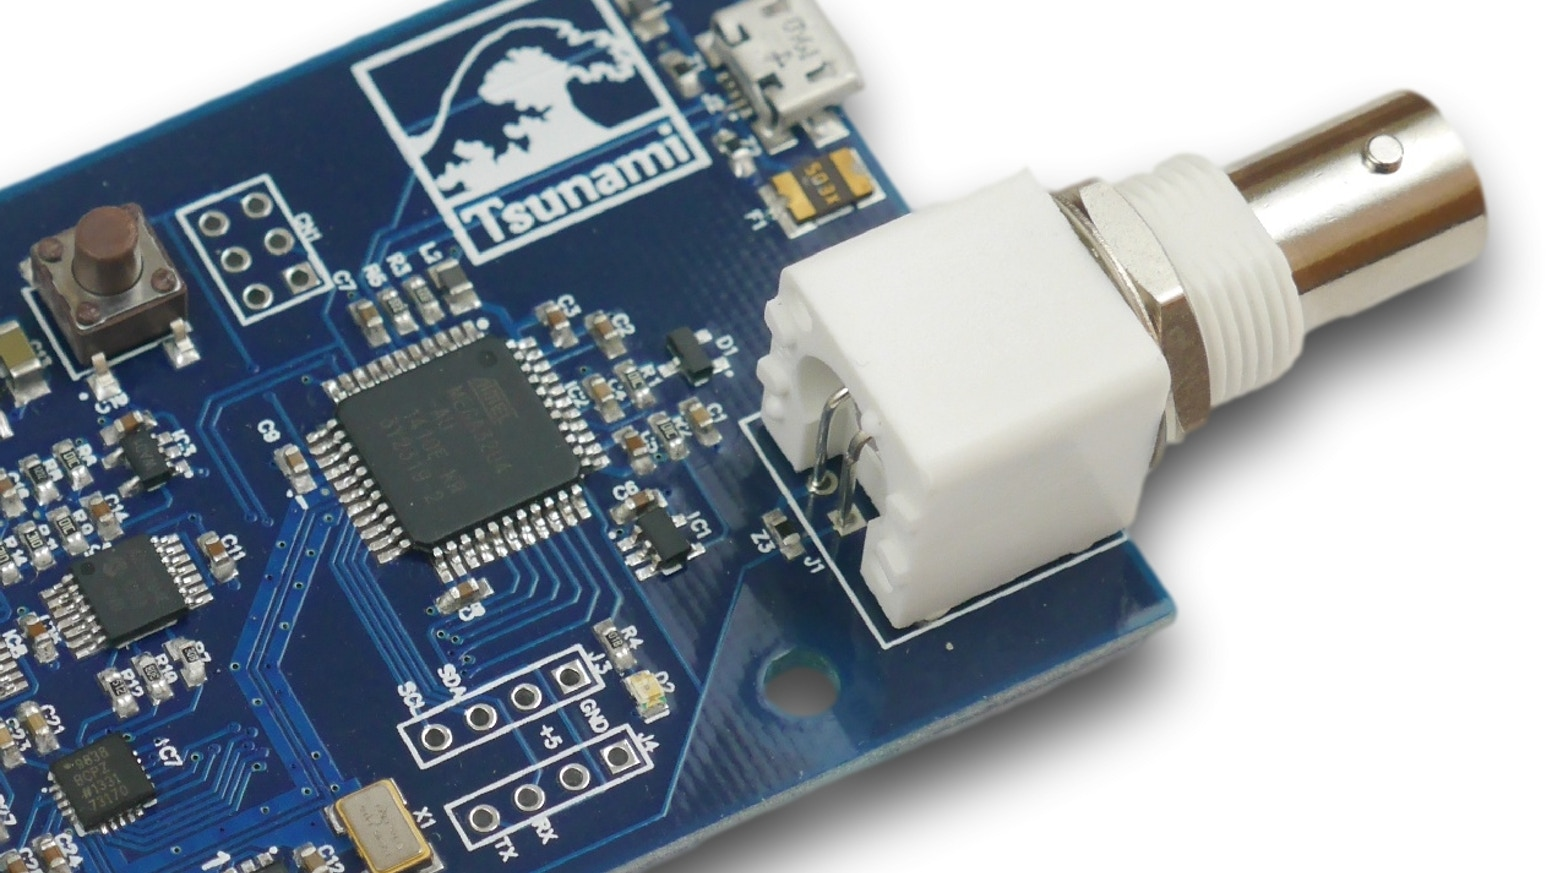 The Tsunami is a powerful and flexible signal generator, analyzer, and experimenter's kit built on the Arduino platform.